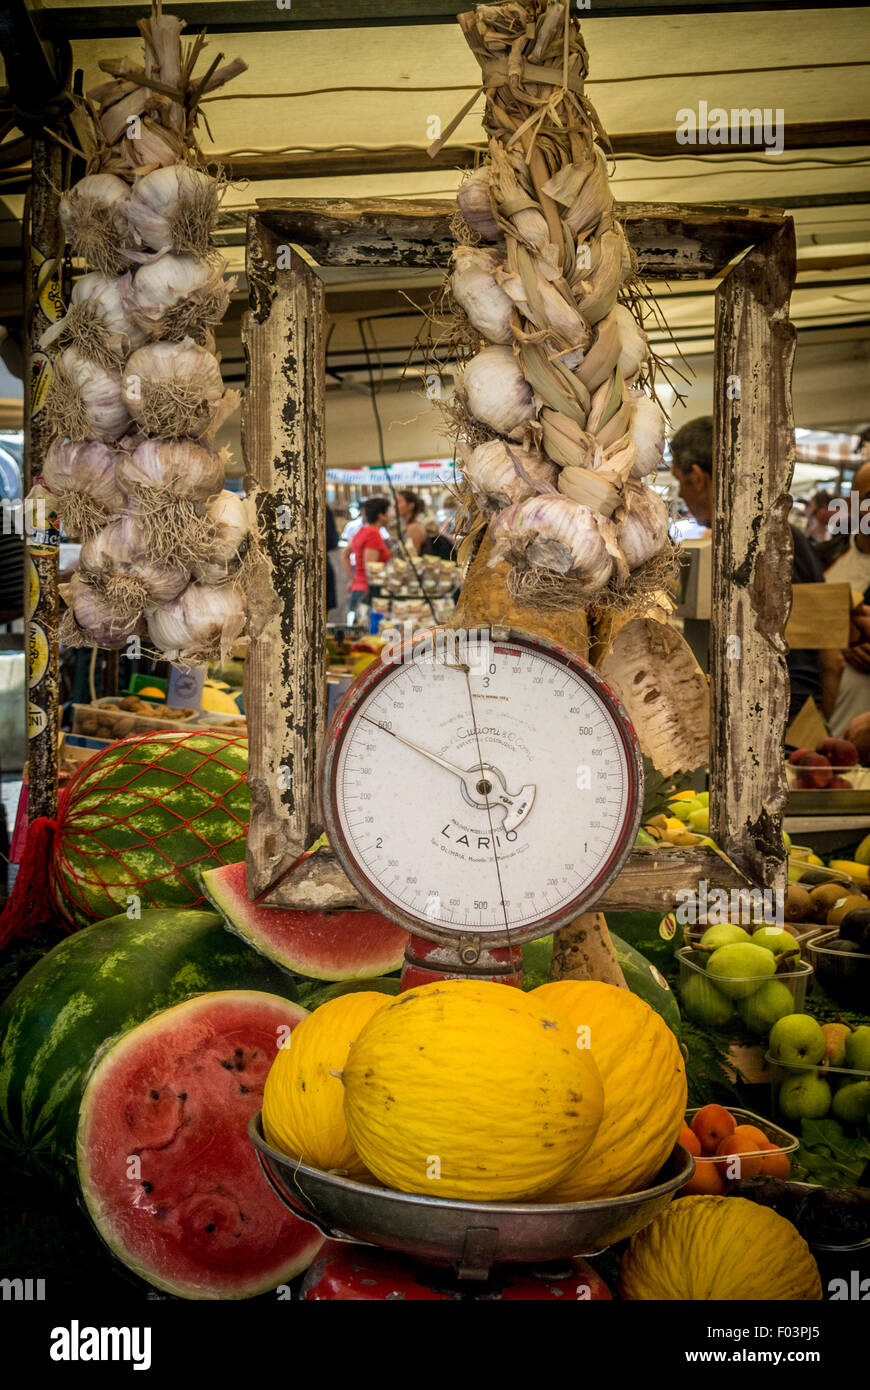 Honeydew melons displayed on old fashioned weighing scales at Campo de' Fiori outdoor food market in Rome., - Stock Image